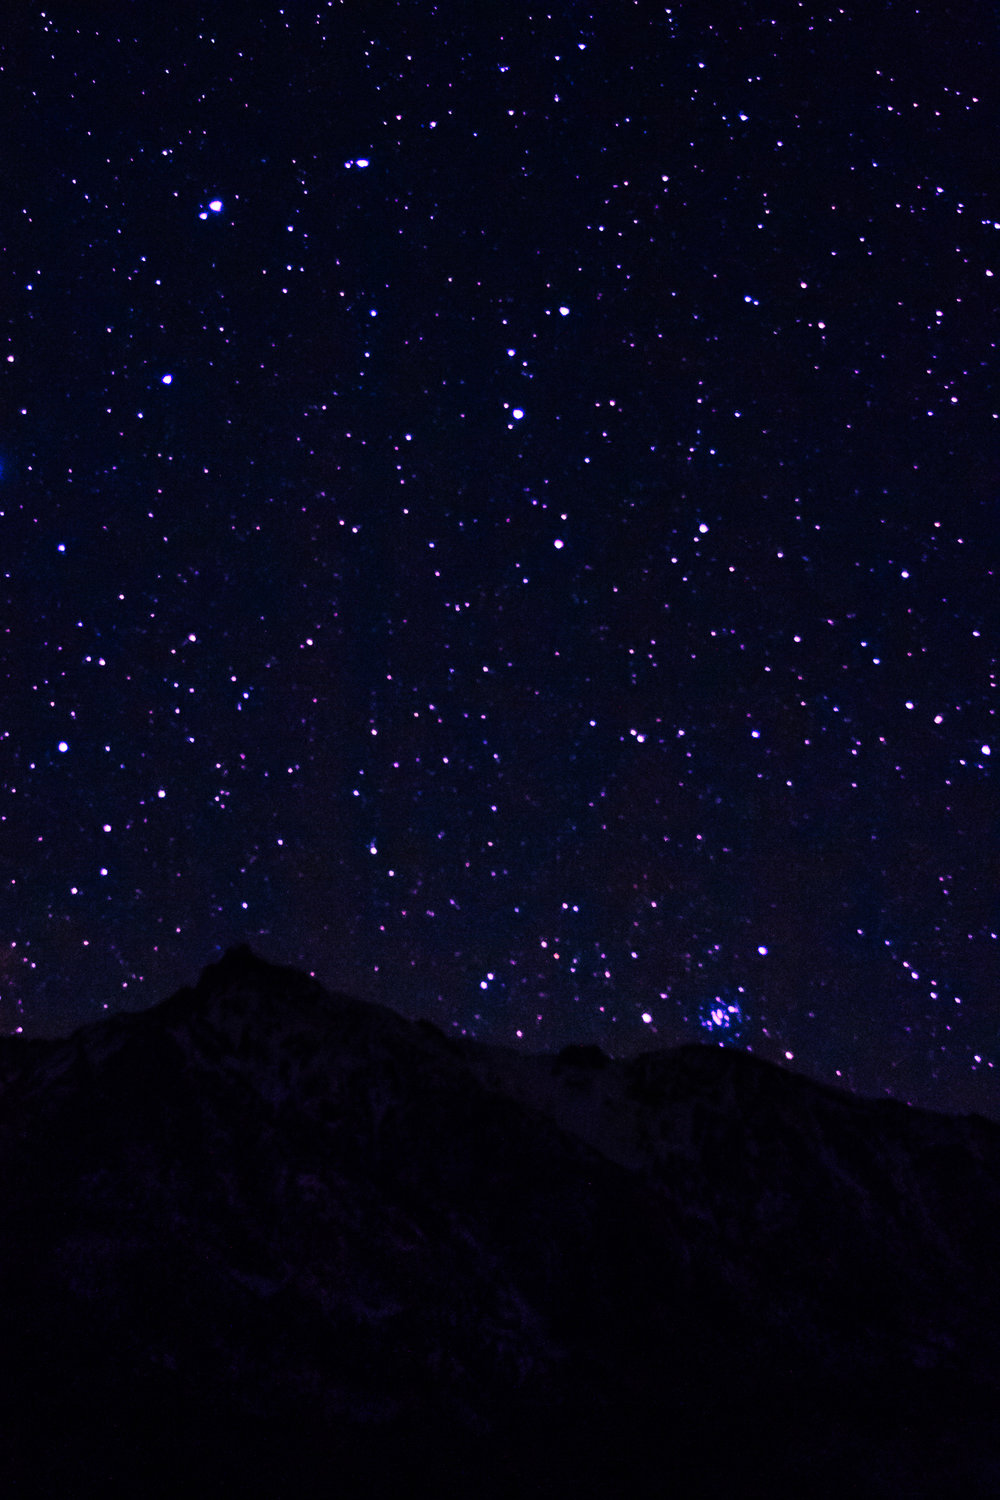 Stars over the Sierra Nevada's, one of the things I wanted to try was astrophotography.  I'm never really in a place dark enough to take photos of stars so I was sure to take advantage of this opportunity and got up at 2:30am to get a few photos.